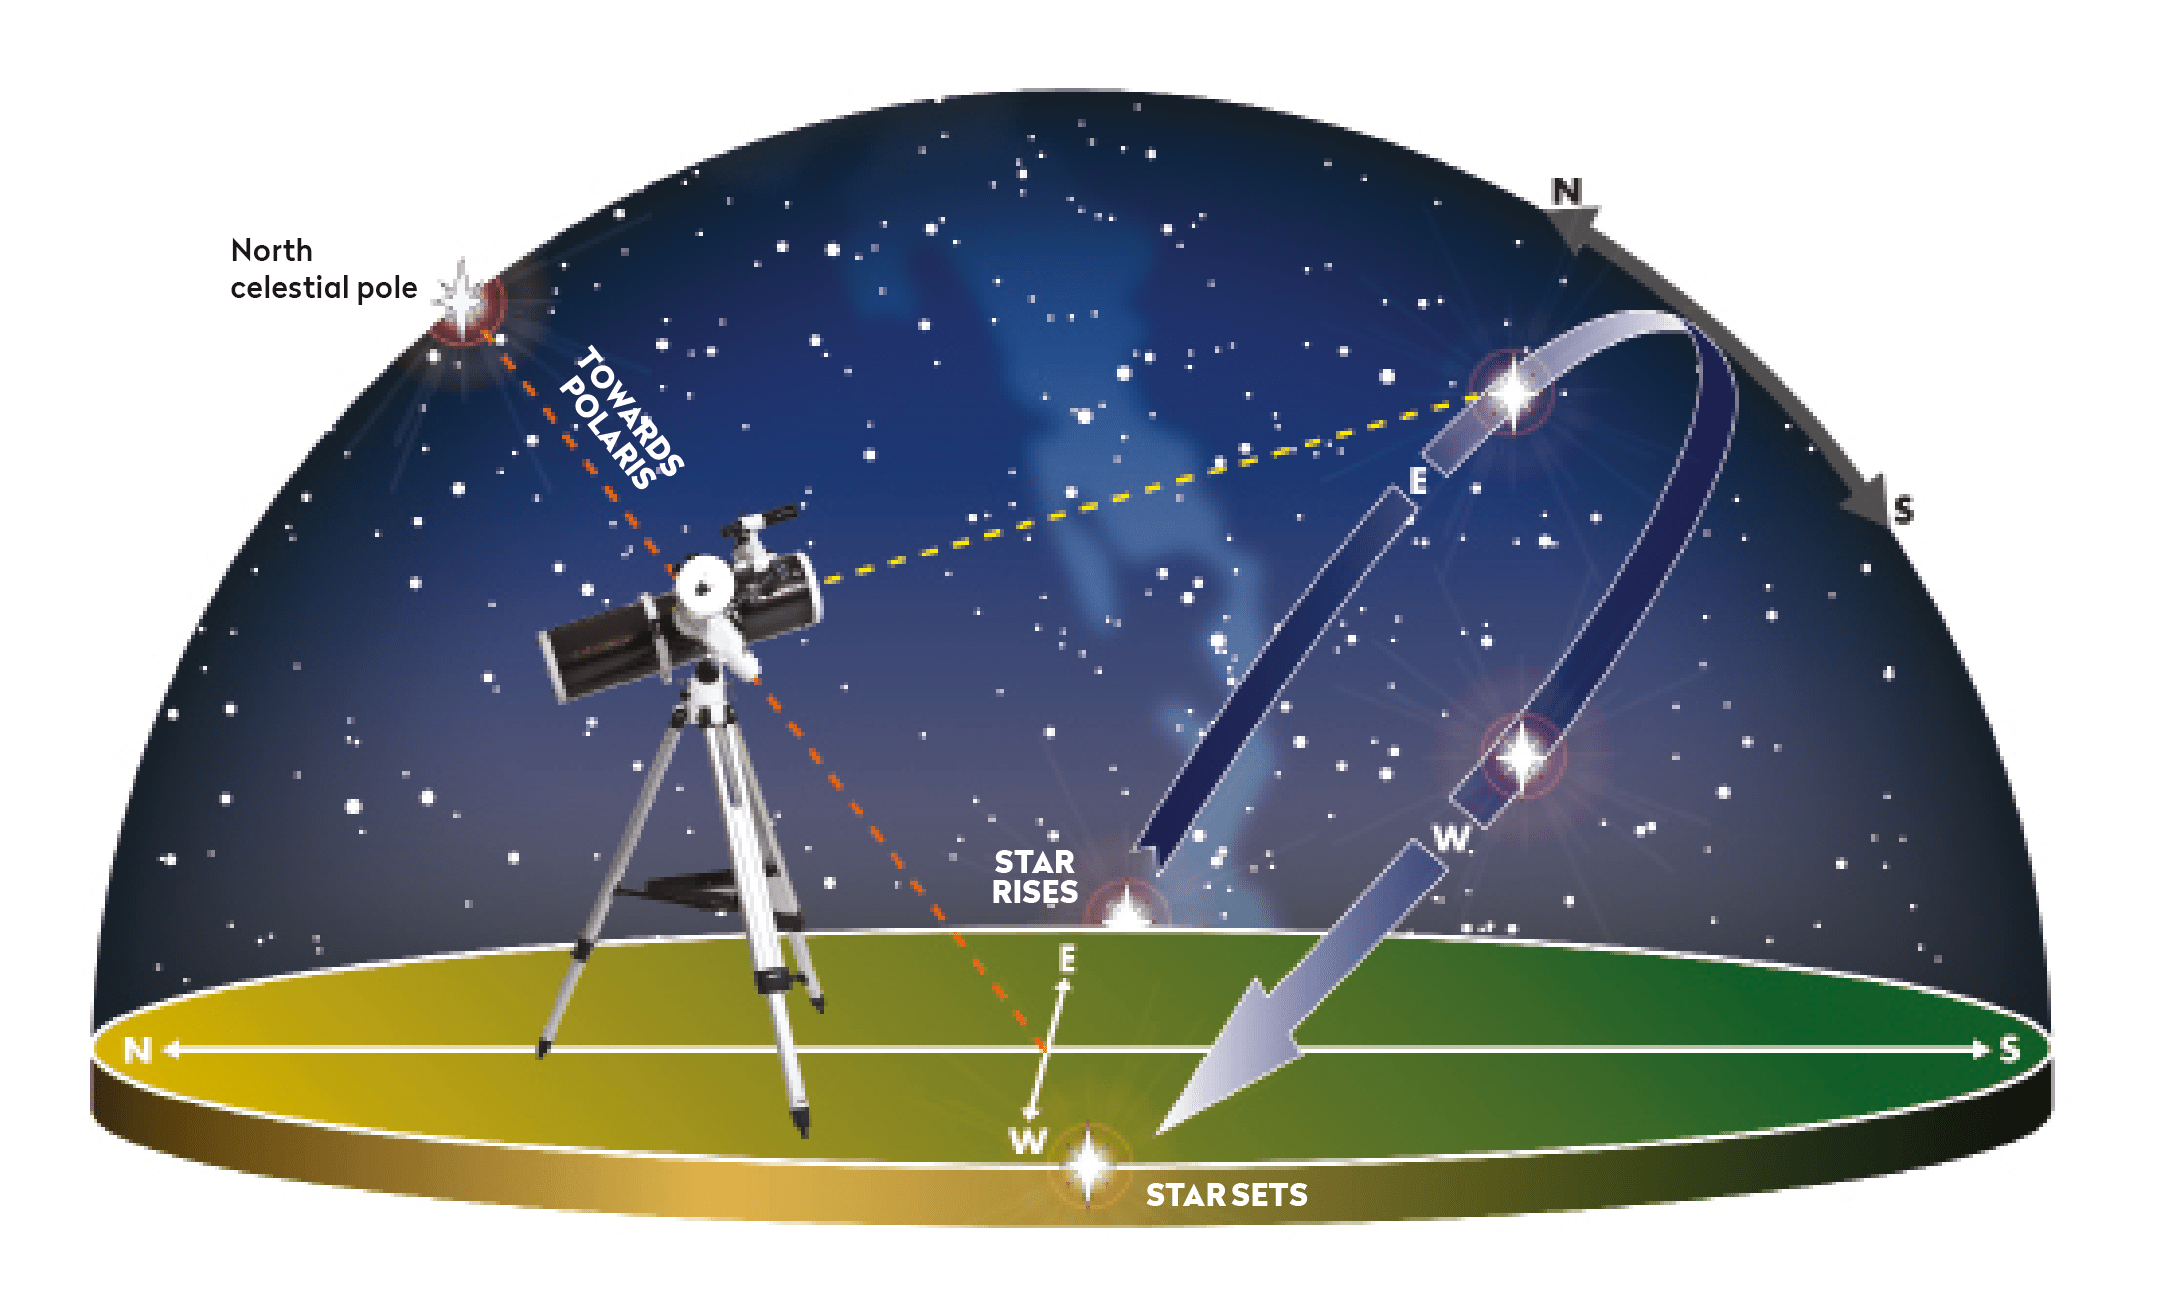 Aligned on the north celestial pole, an equatorial mount makes it easy to track stars as they move from east to west through the night.